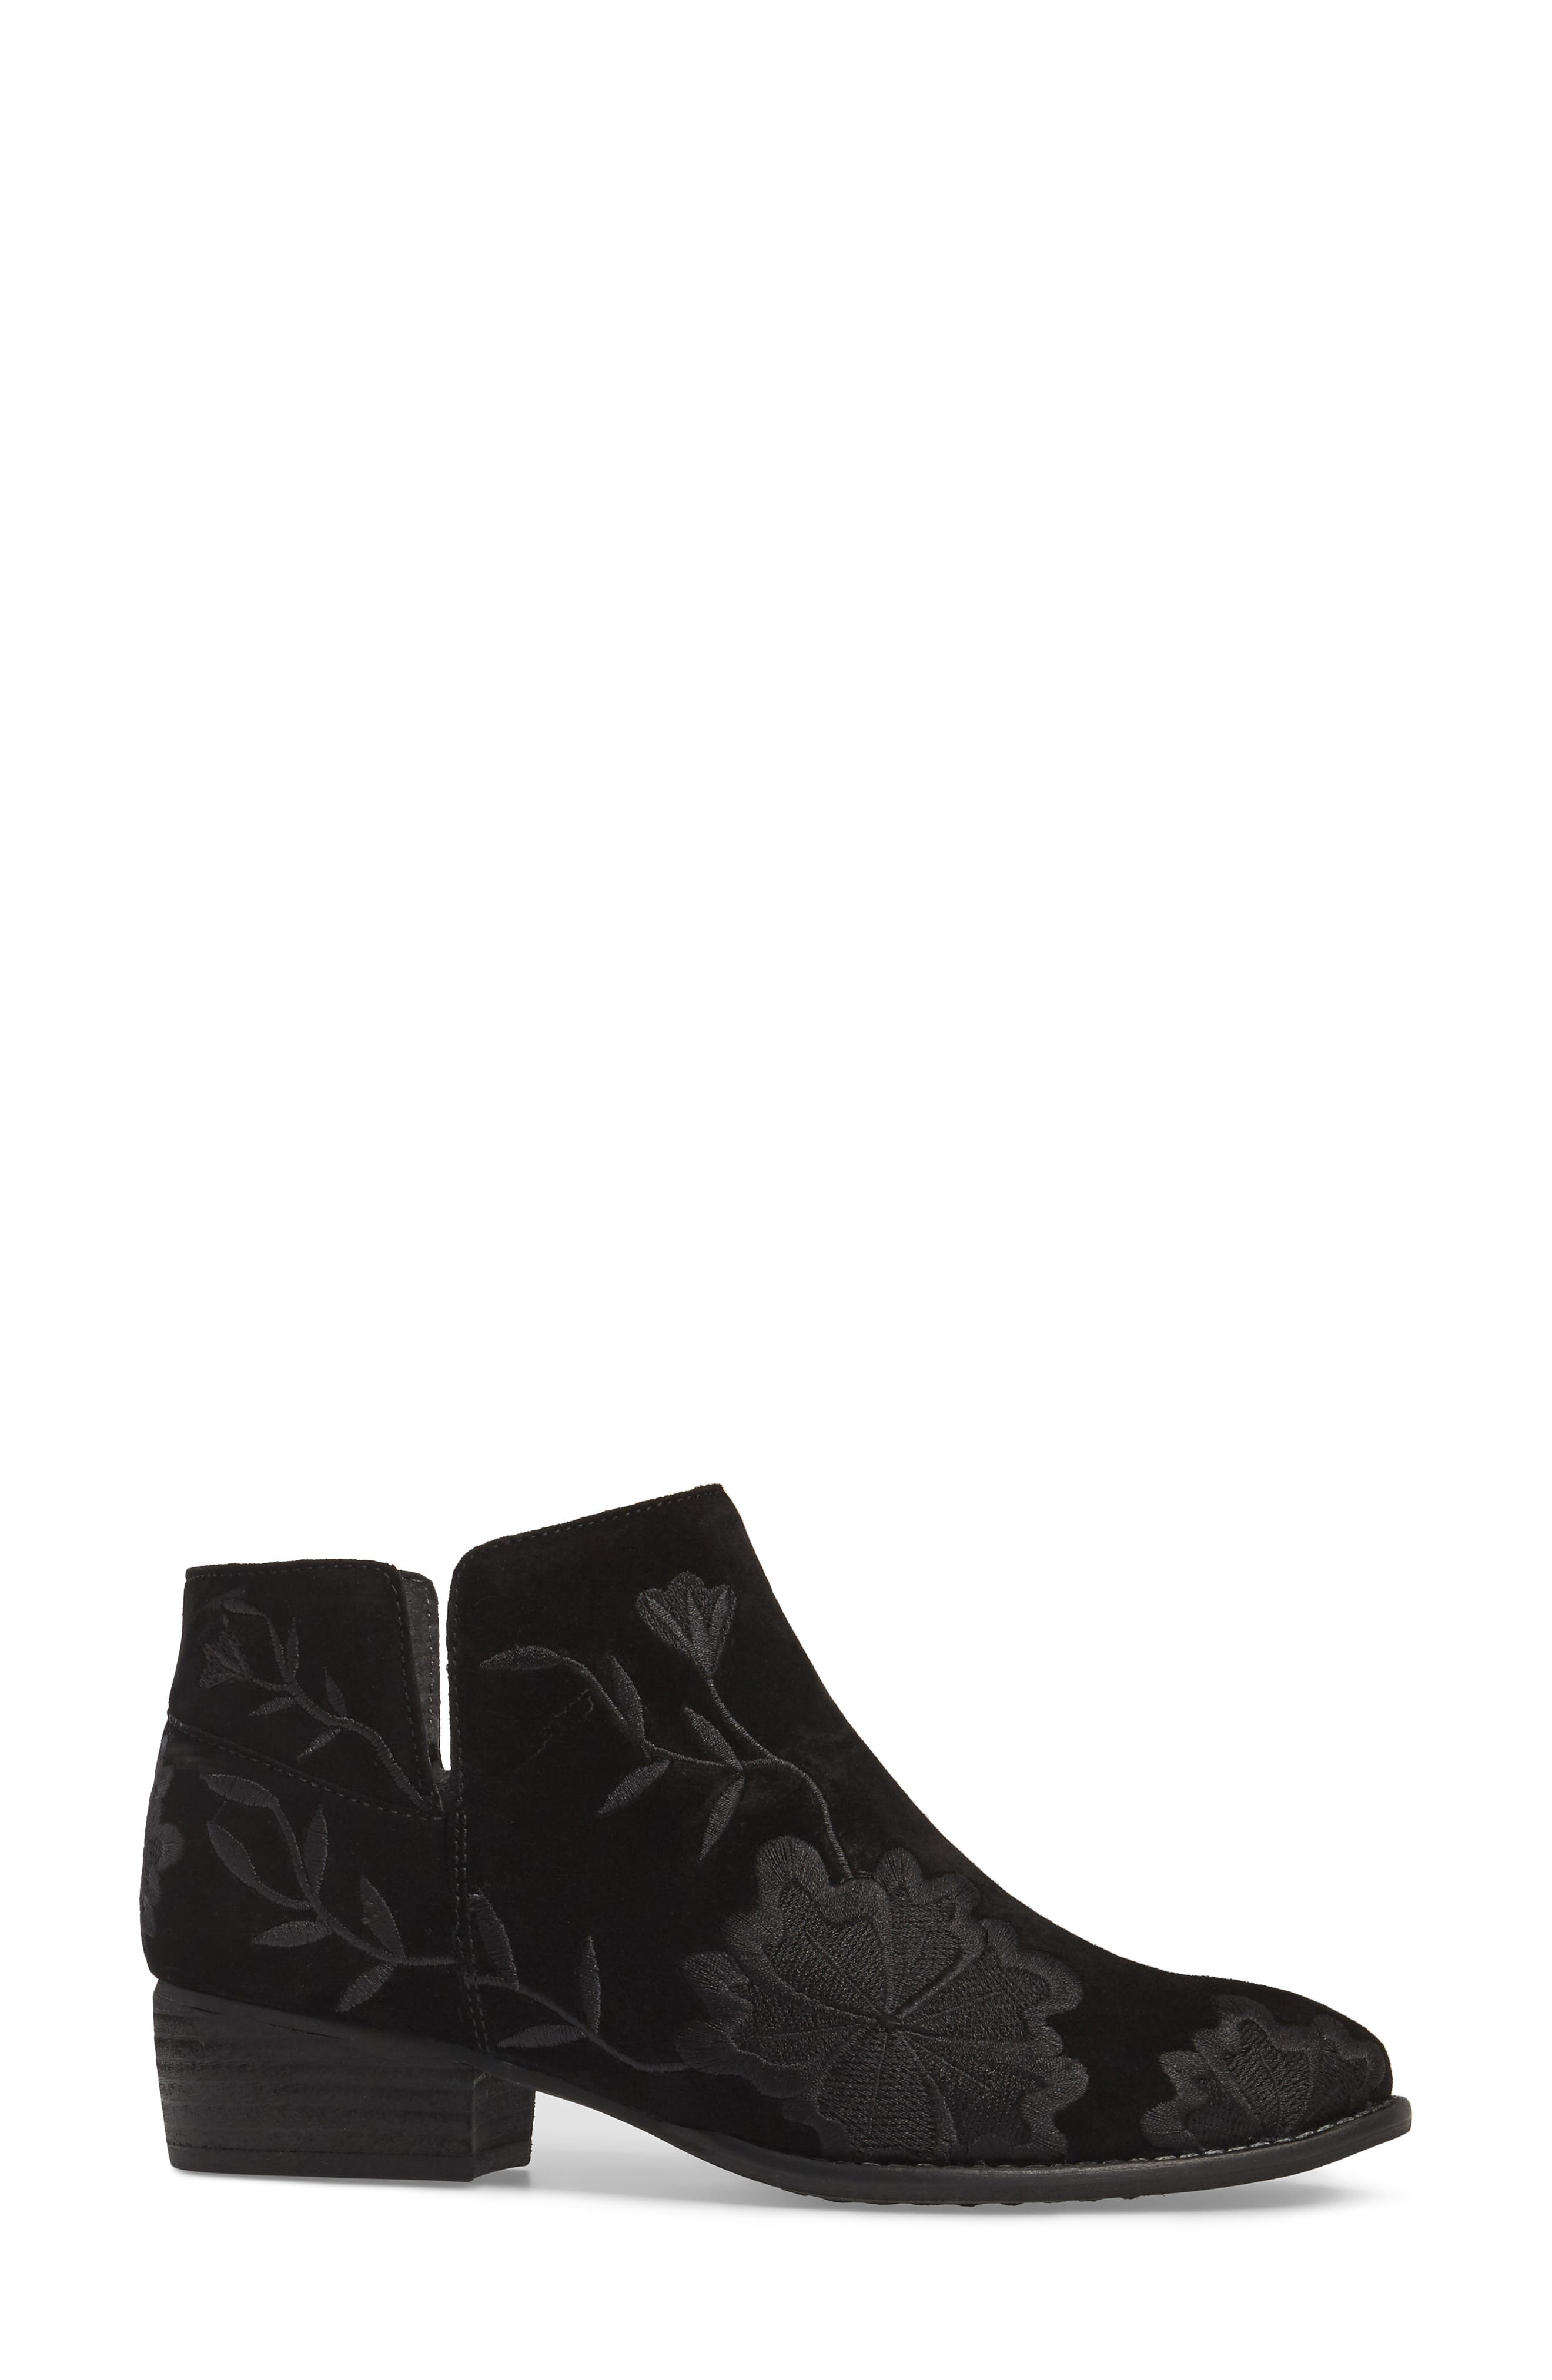 Lantern Embroidered Short Bootie,                             Alternate thumbnail 3, color,                             001